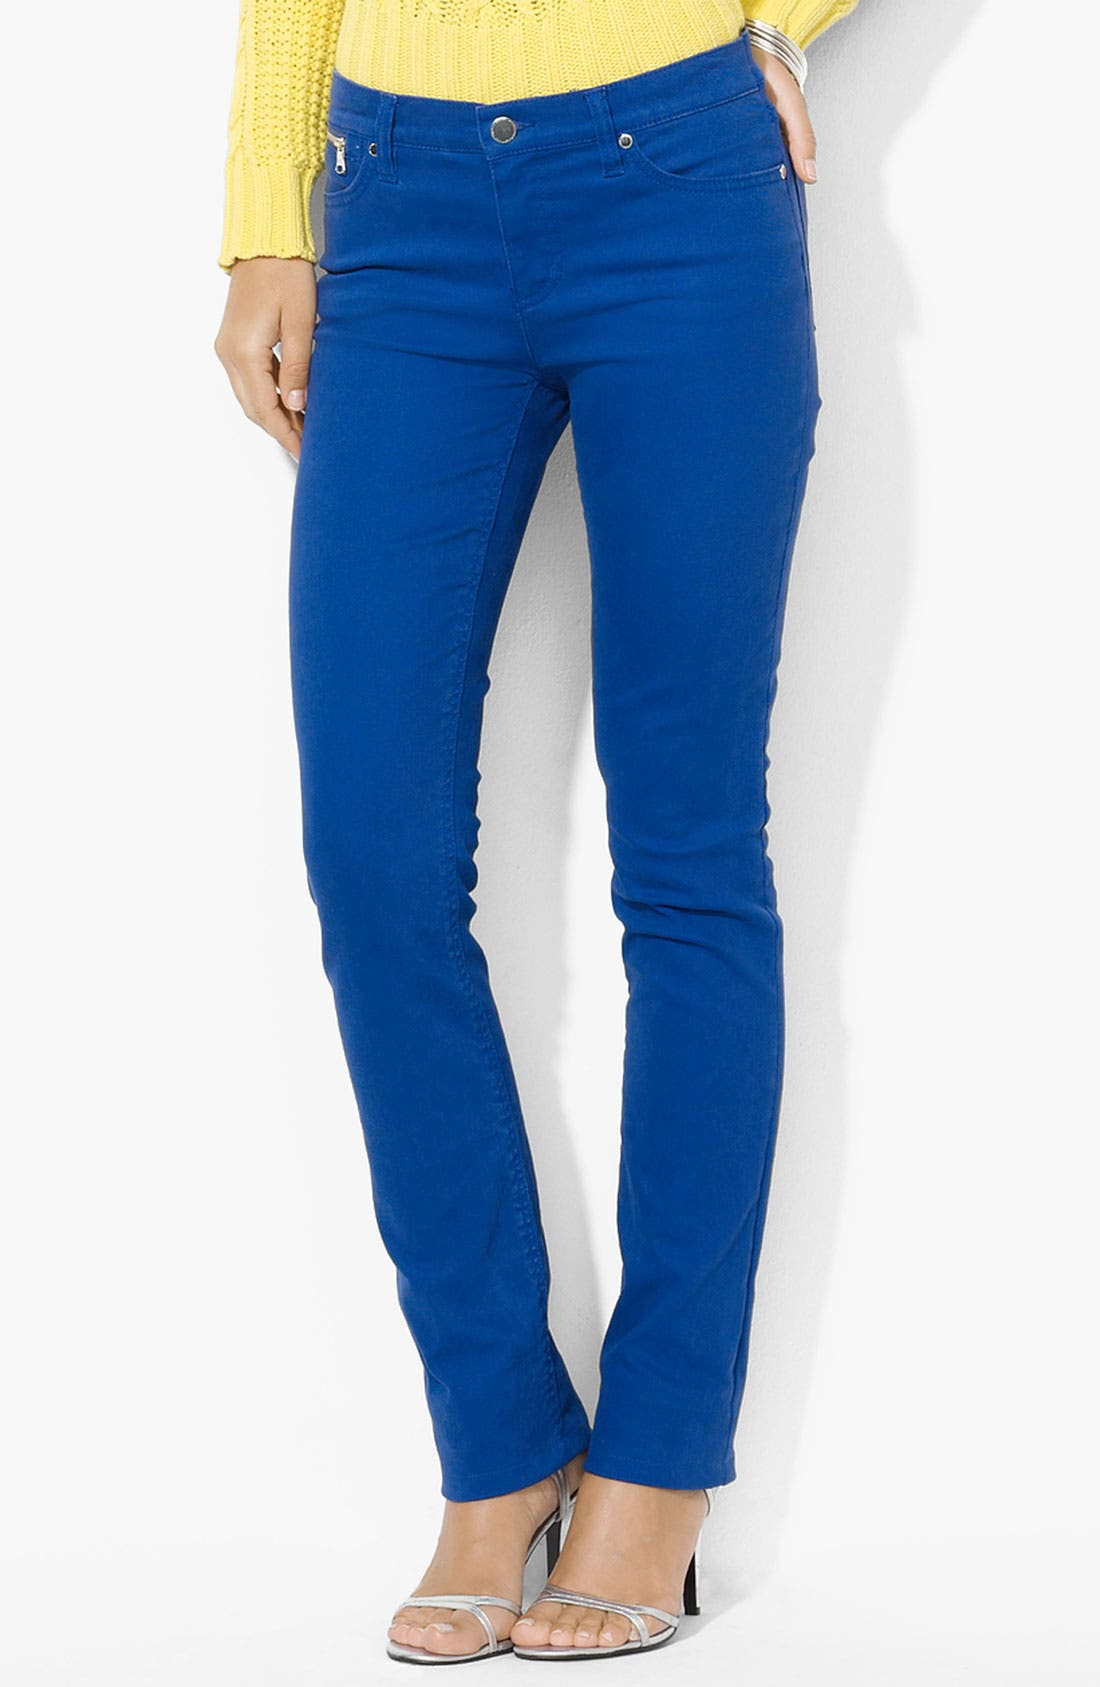 Alternate Image 1 Selected - Lauren Ralph Lauren Slim Straight Leg Colored Jeans (Petite) (Online Only)